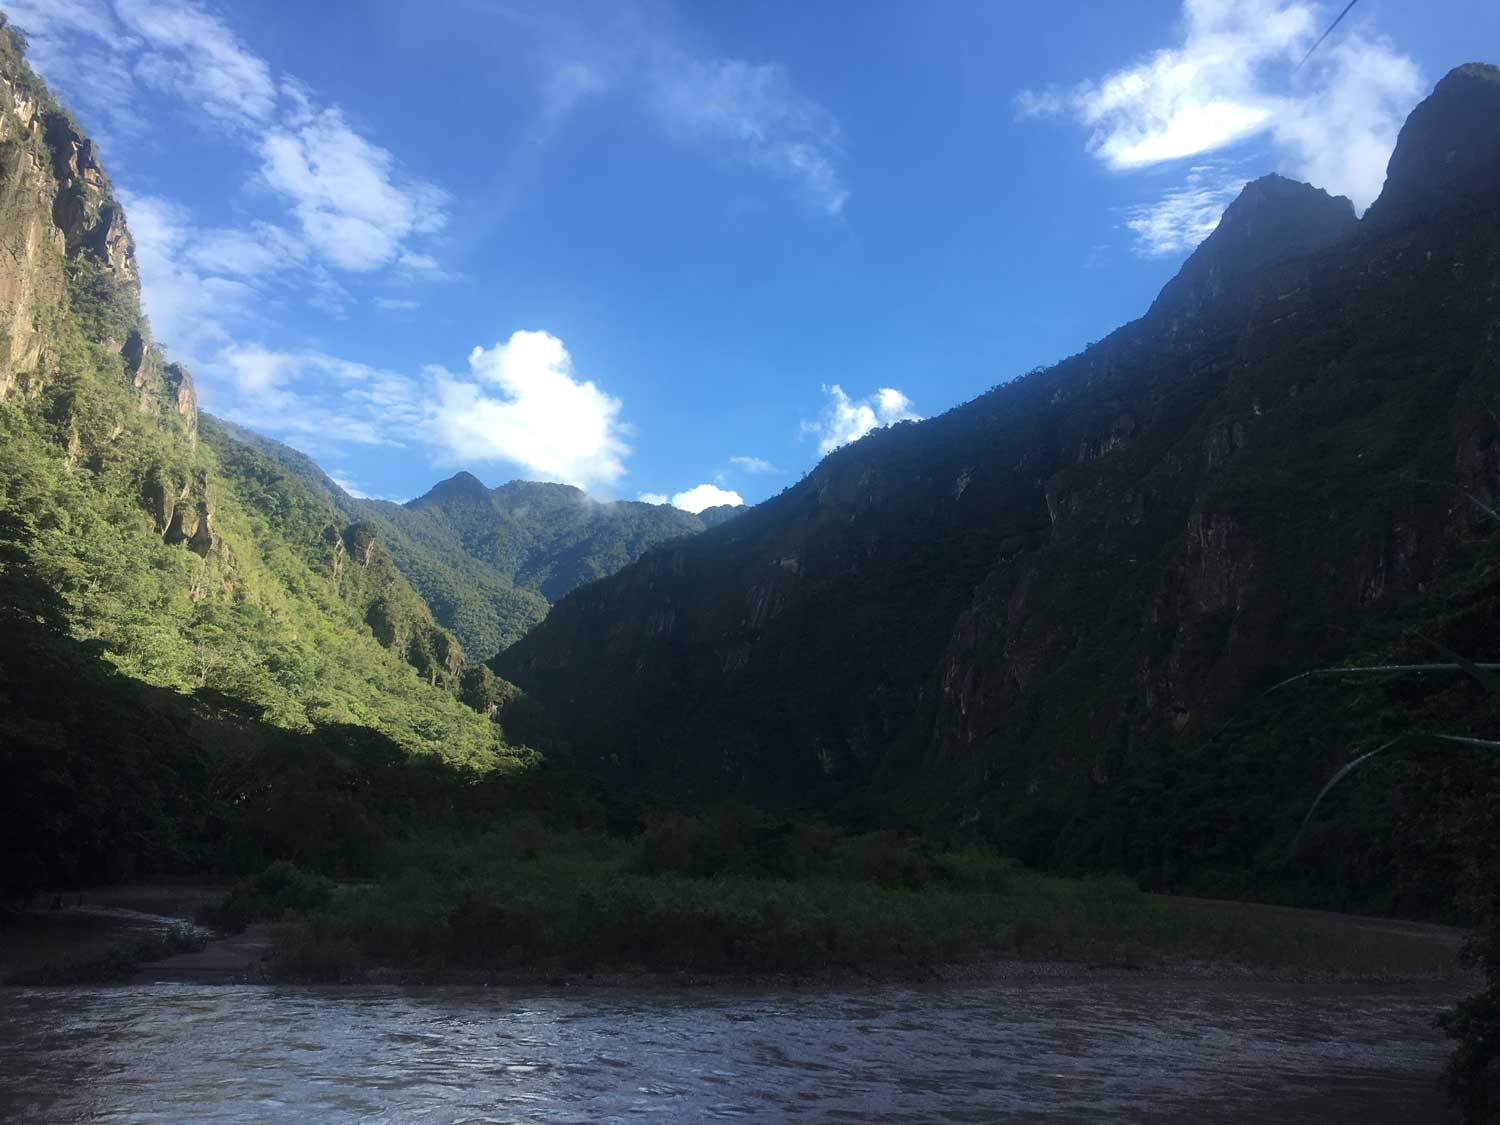 Andes-Mountains-and-Urubamba-River.jpg